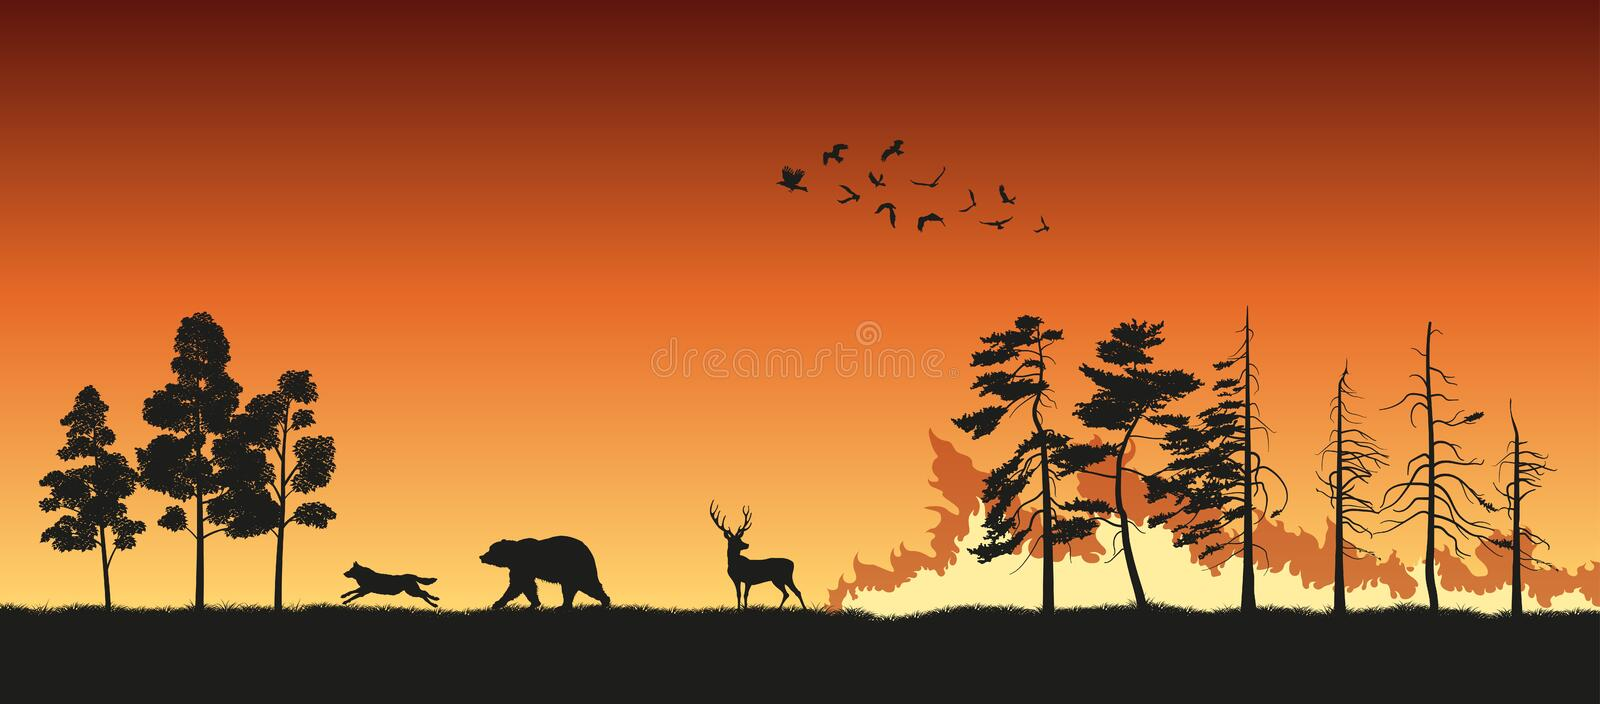 Black silhouettes of animals on wildfire background. Bear, wolf and deer escape from a forest fire vector illustration